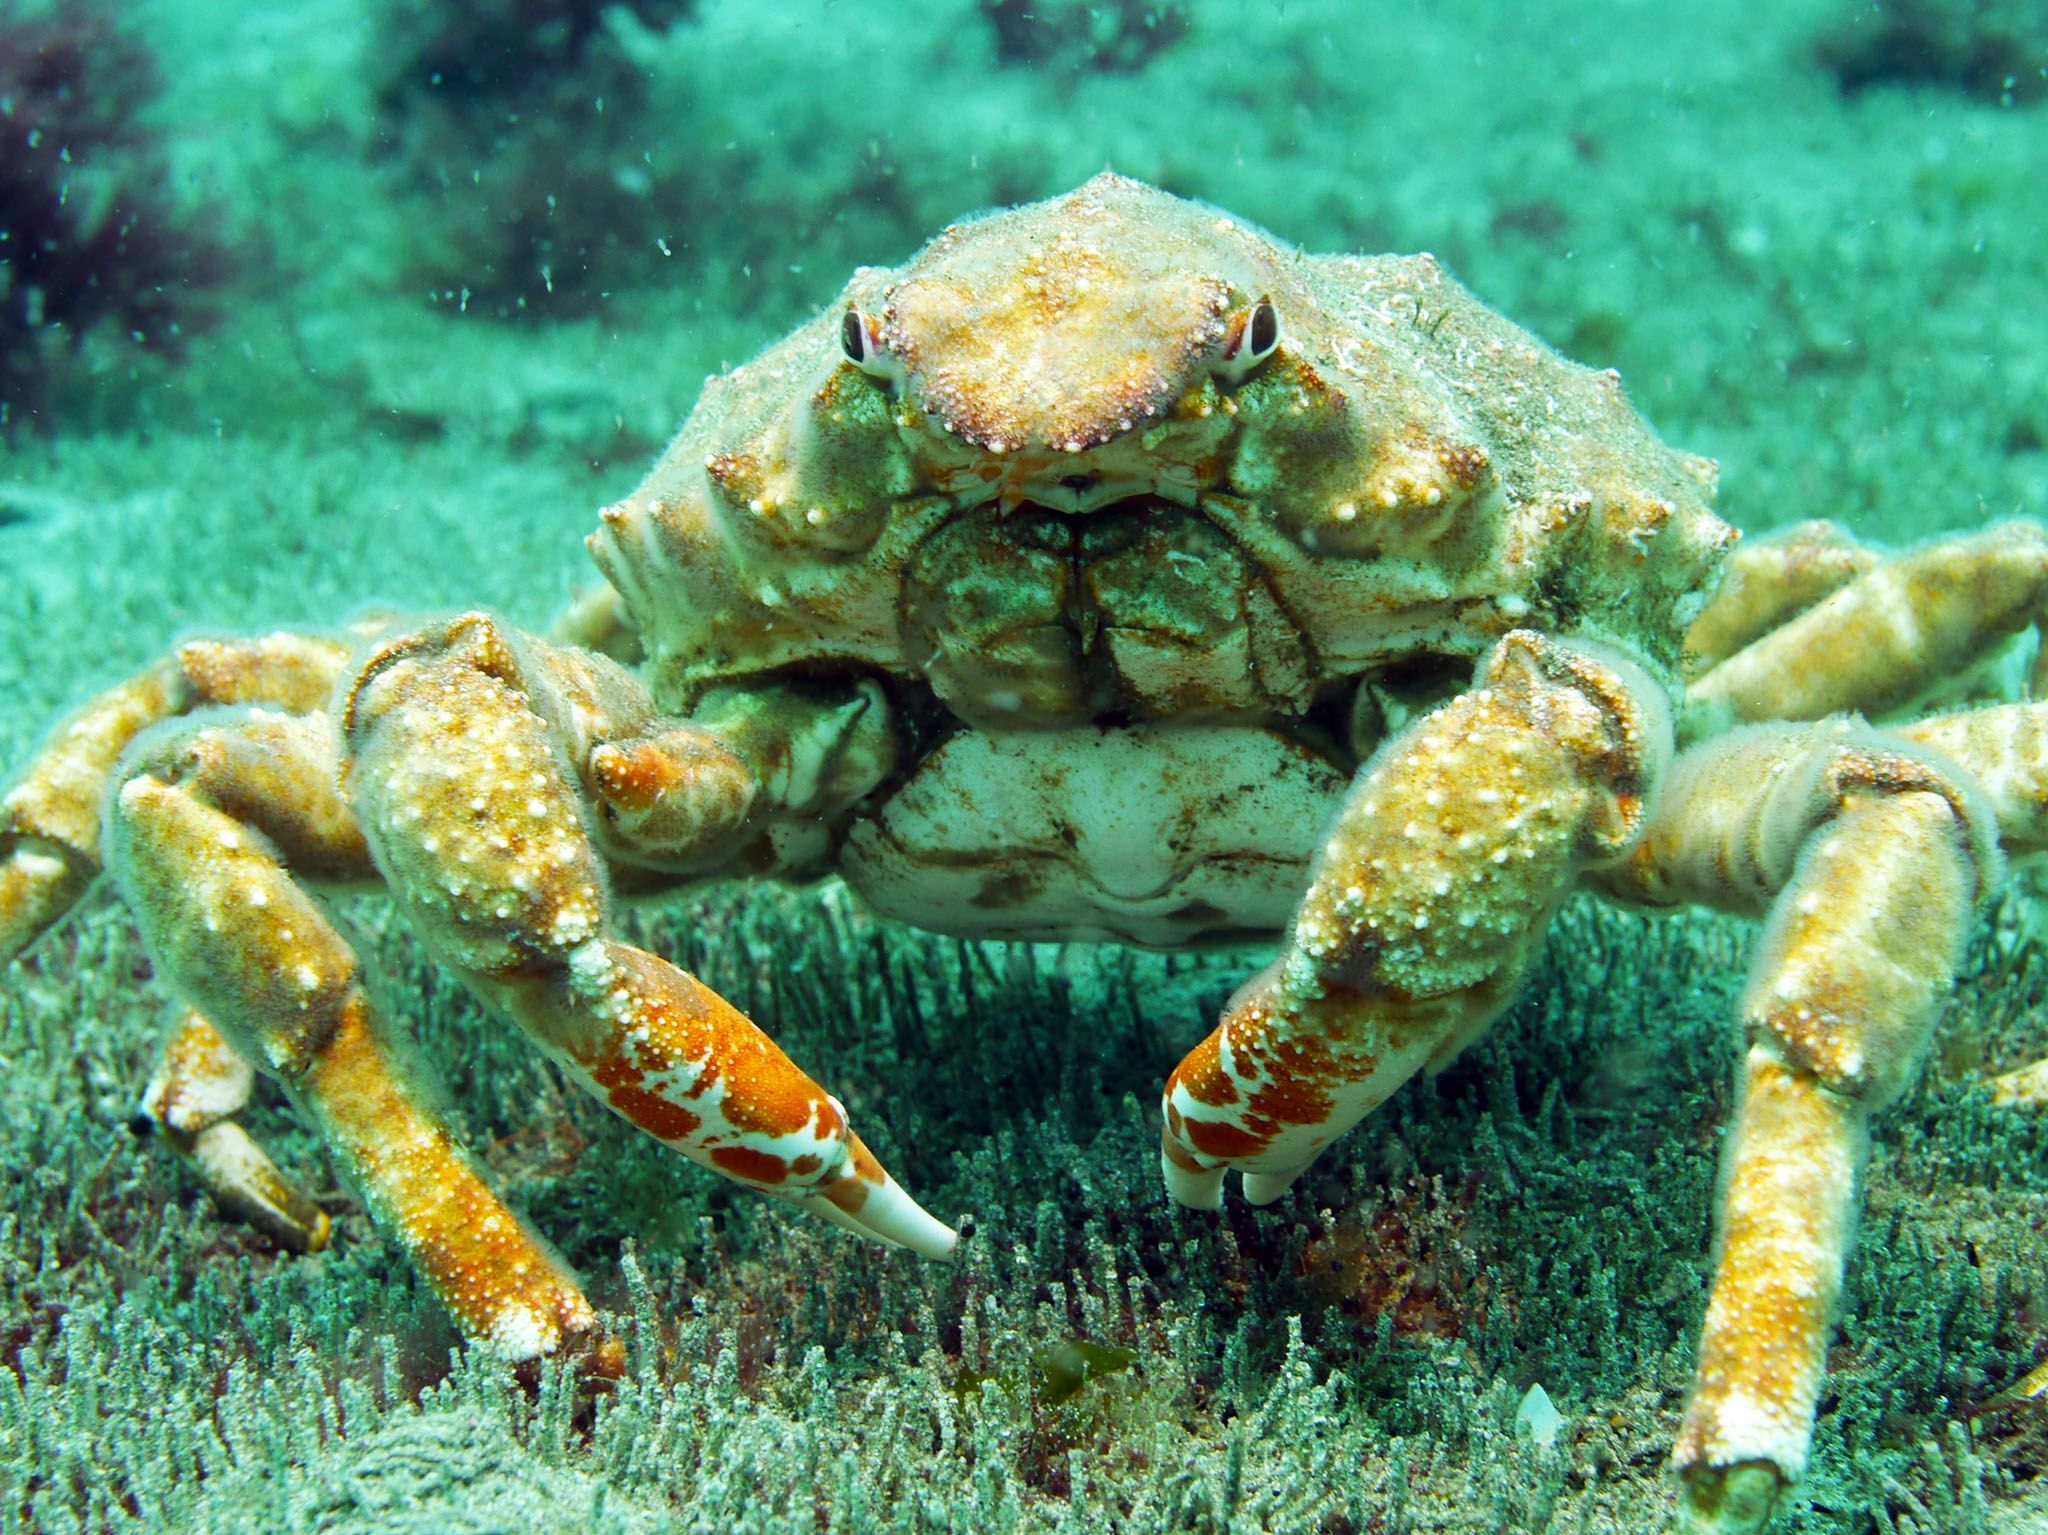 Auckland Islands, New Zealand: Female giant spider crab. This image is from Savage Island Giants. [Photo of the day - July 2017]